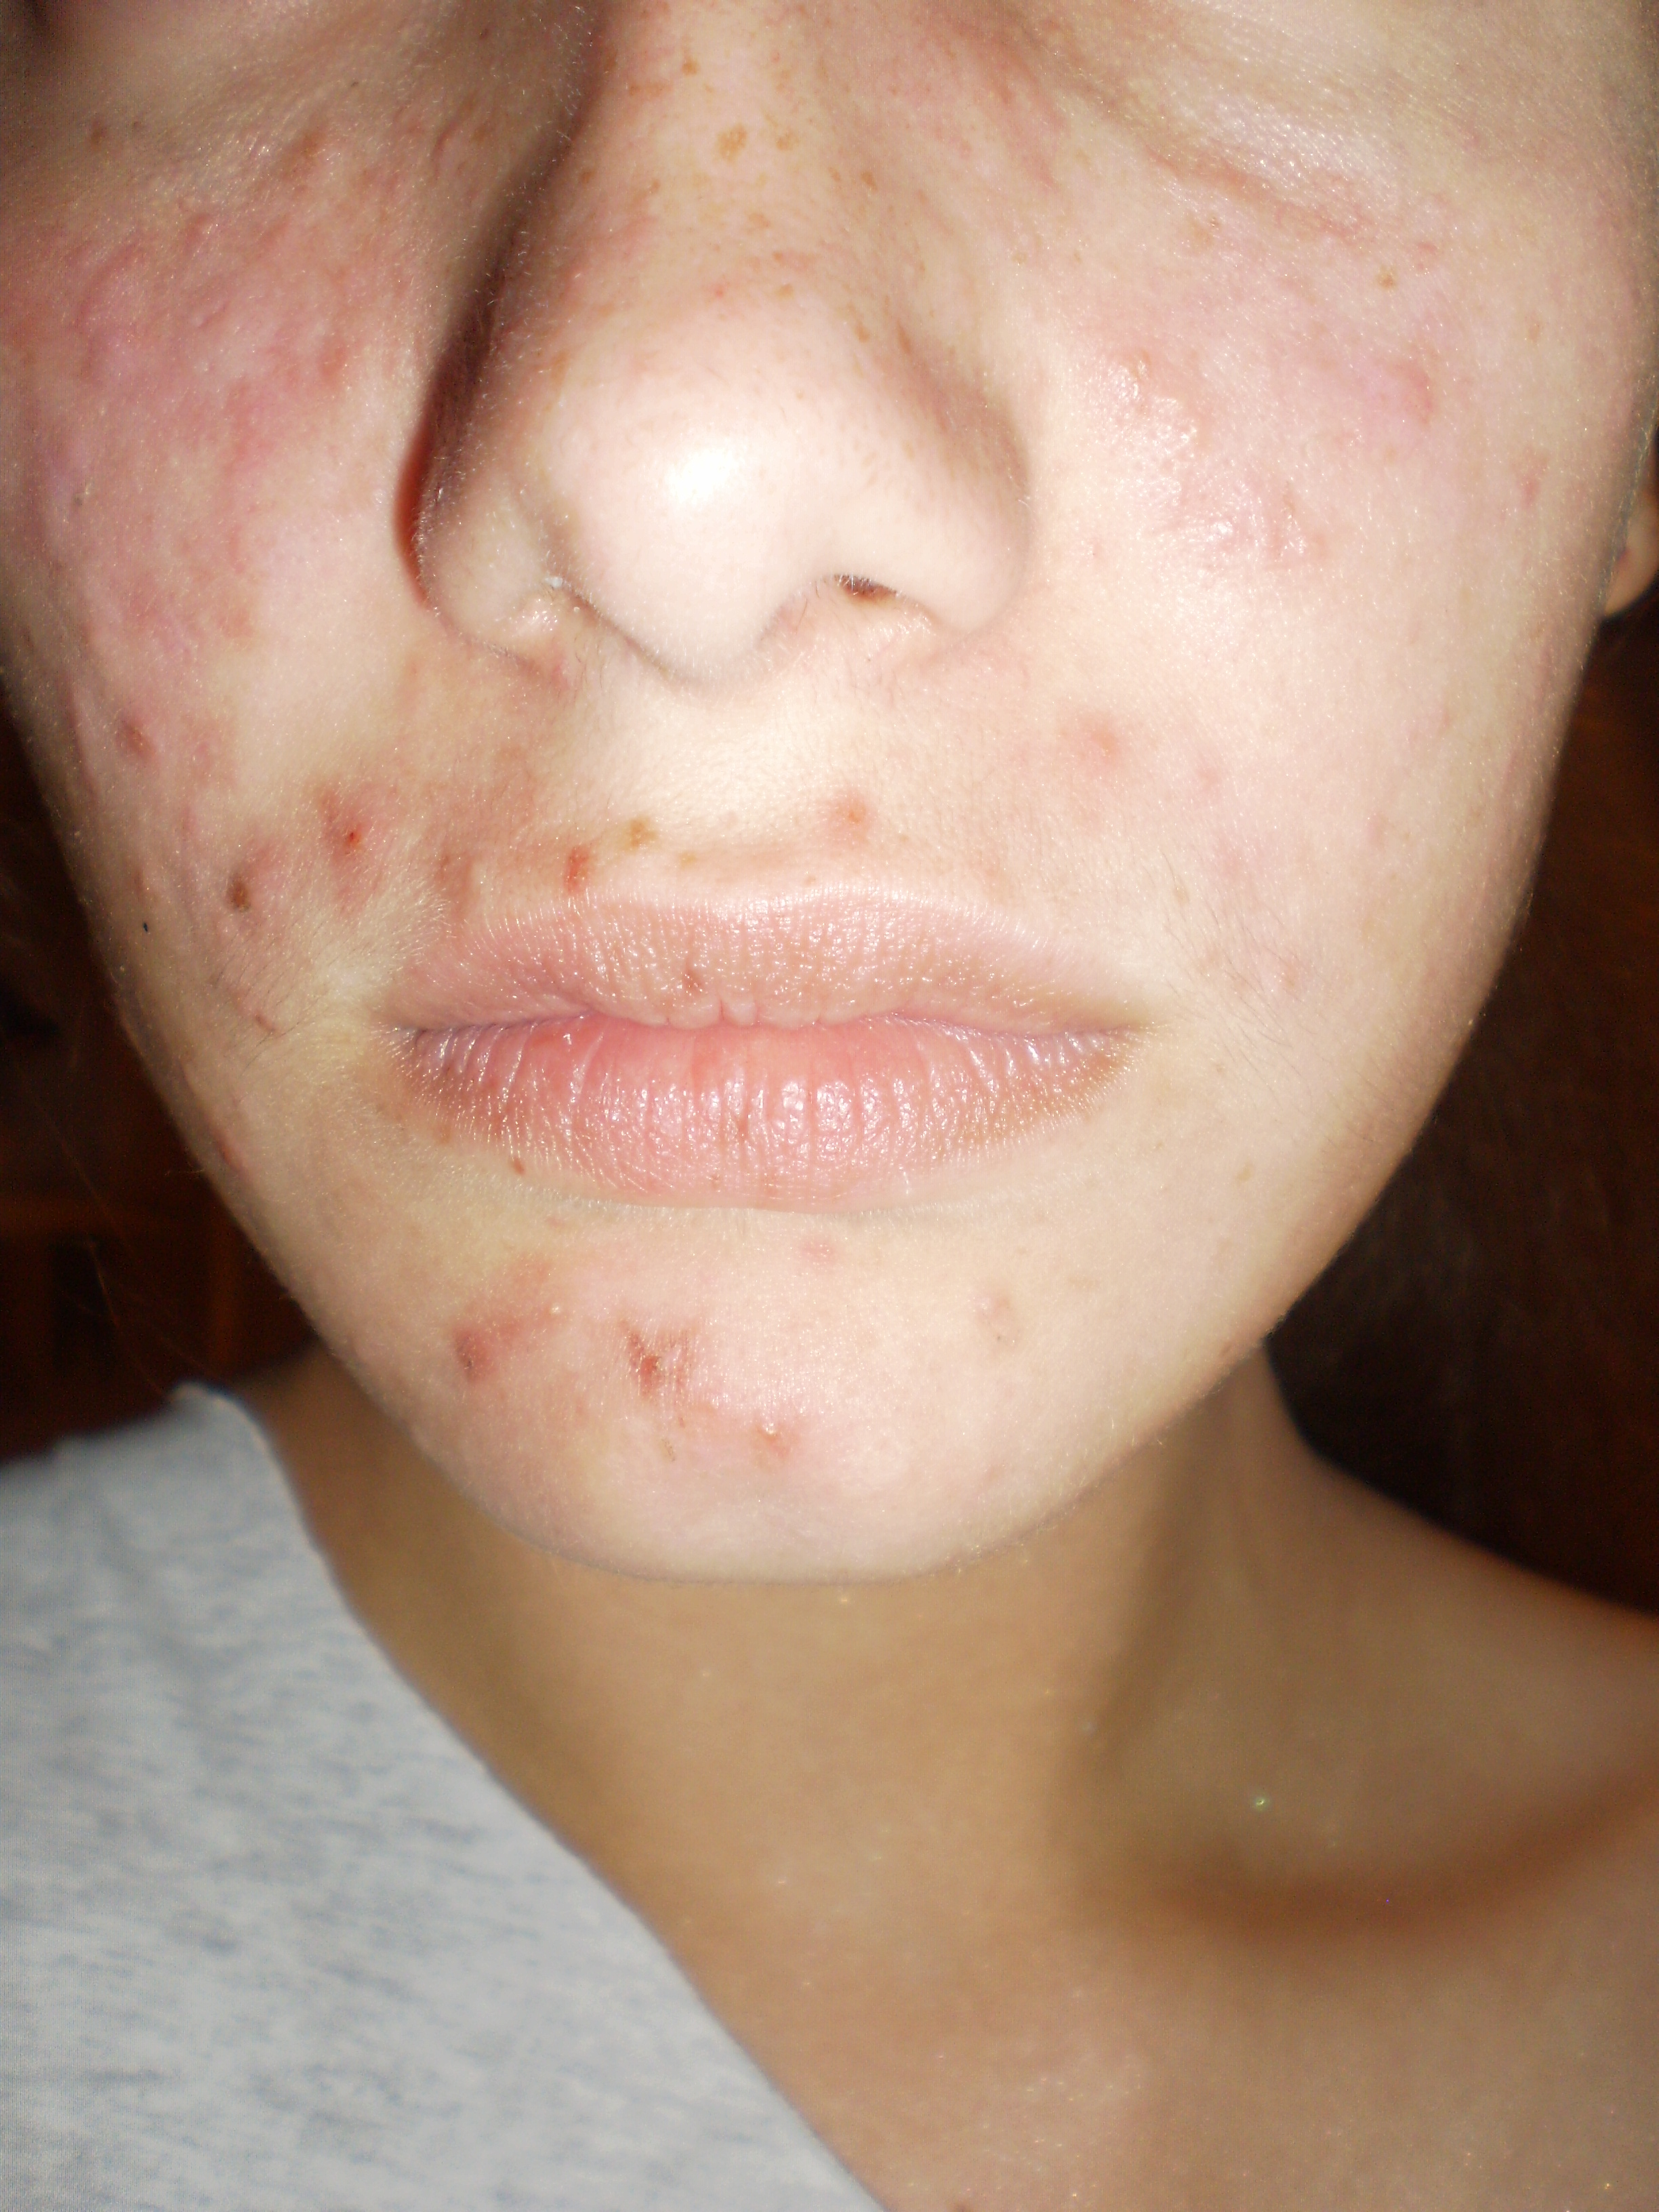 dry skin and acne